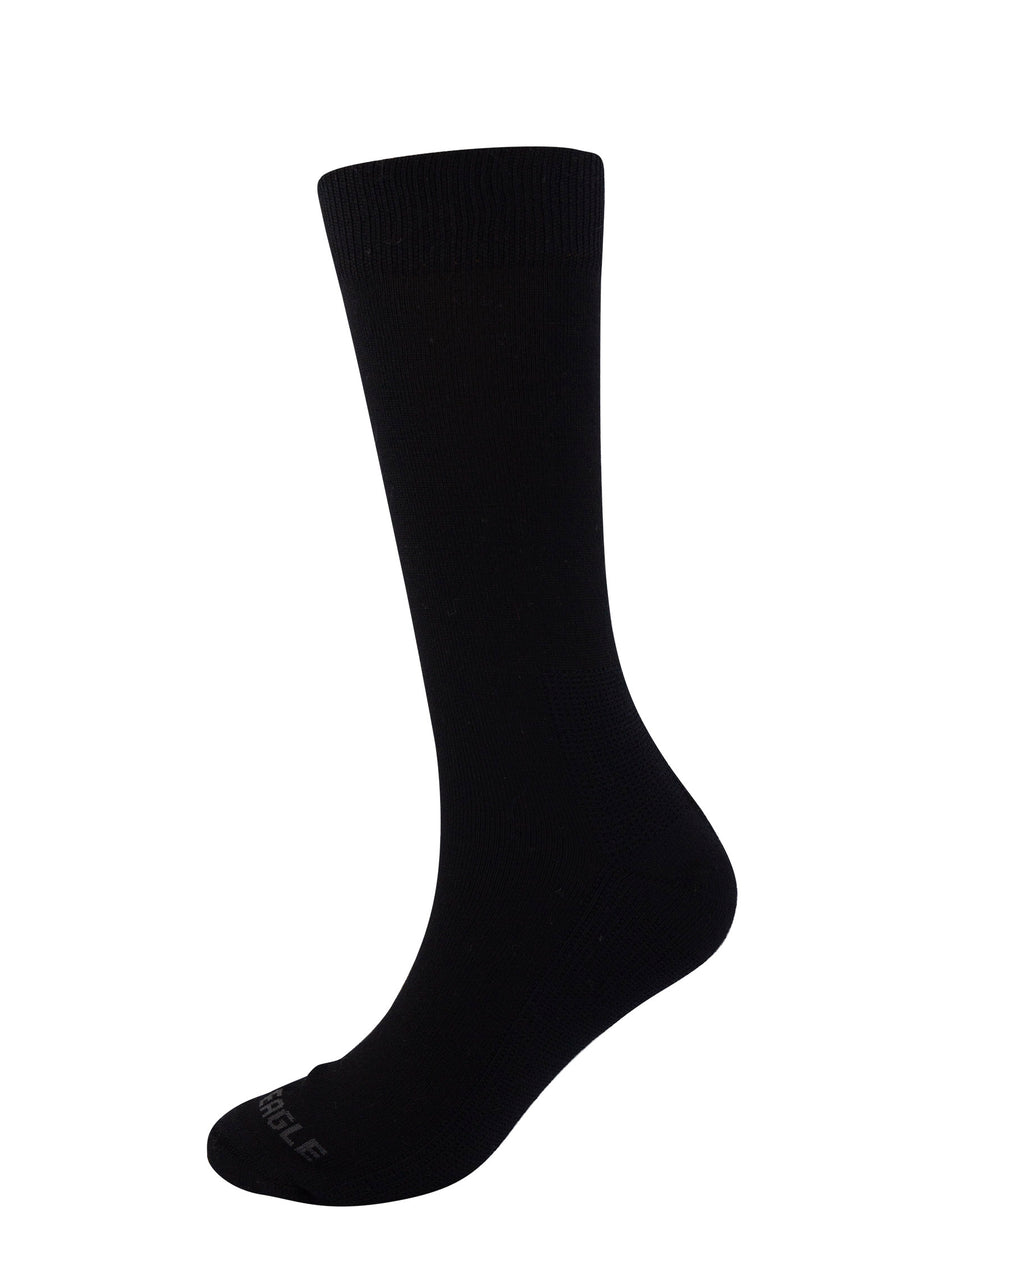 Blue Eagle Dress Sock (8682)